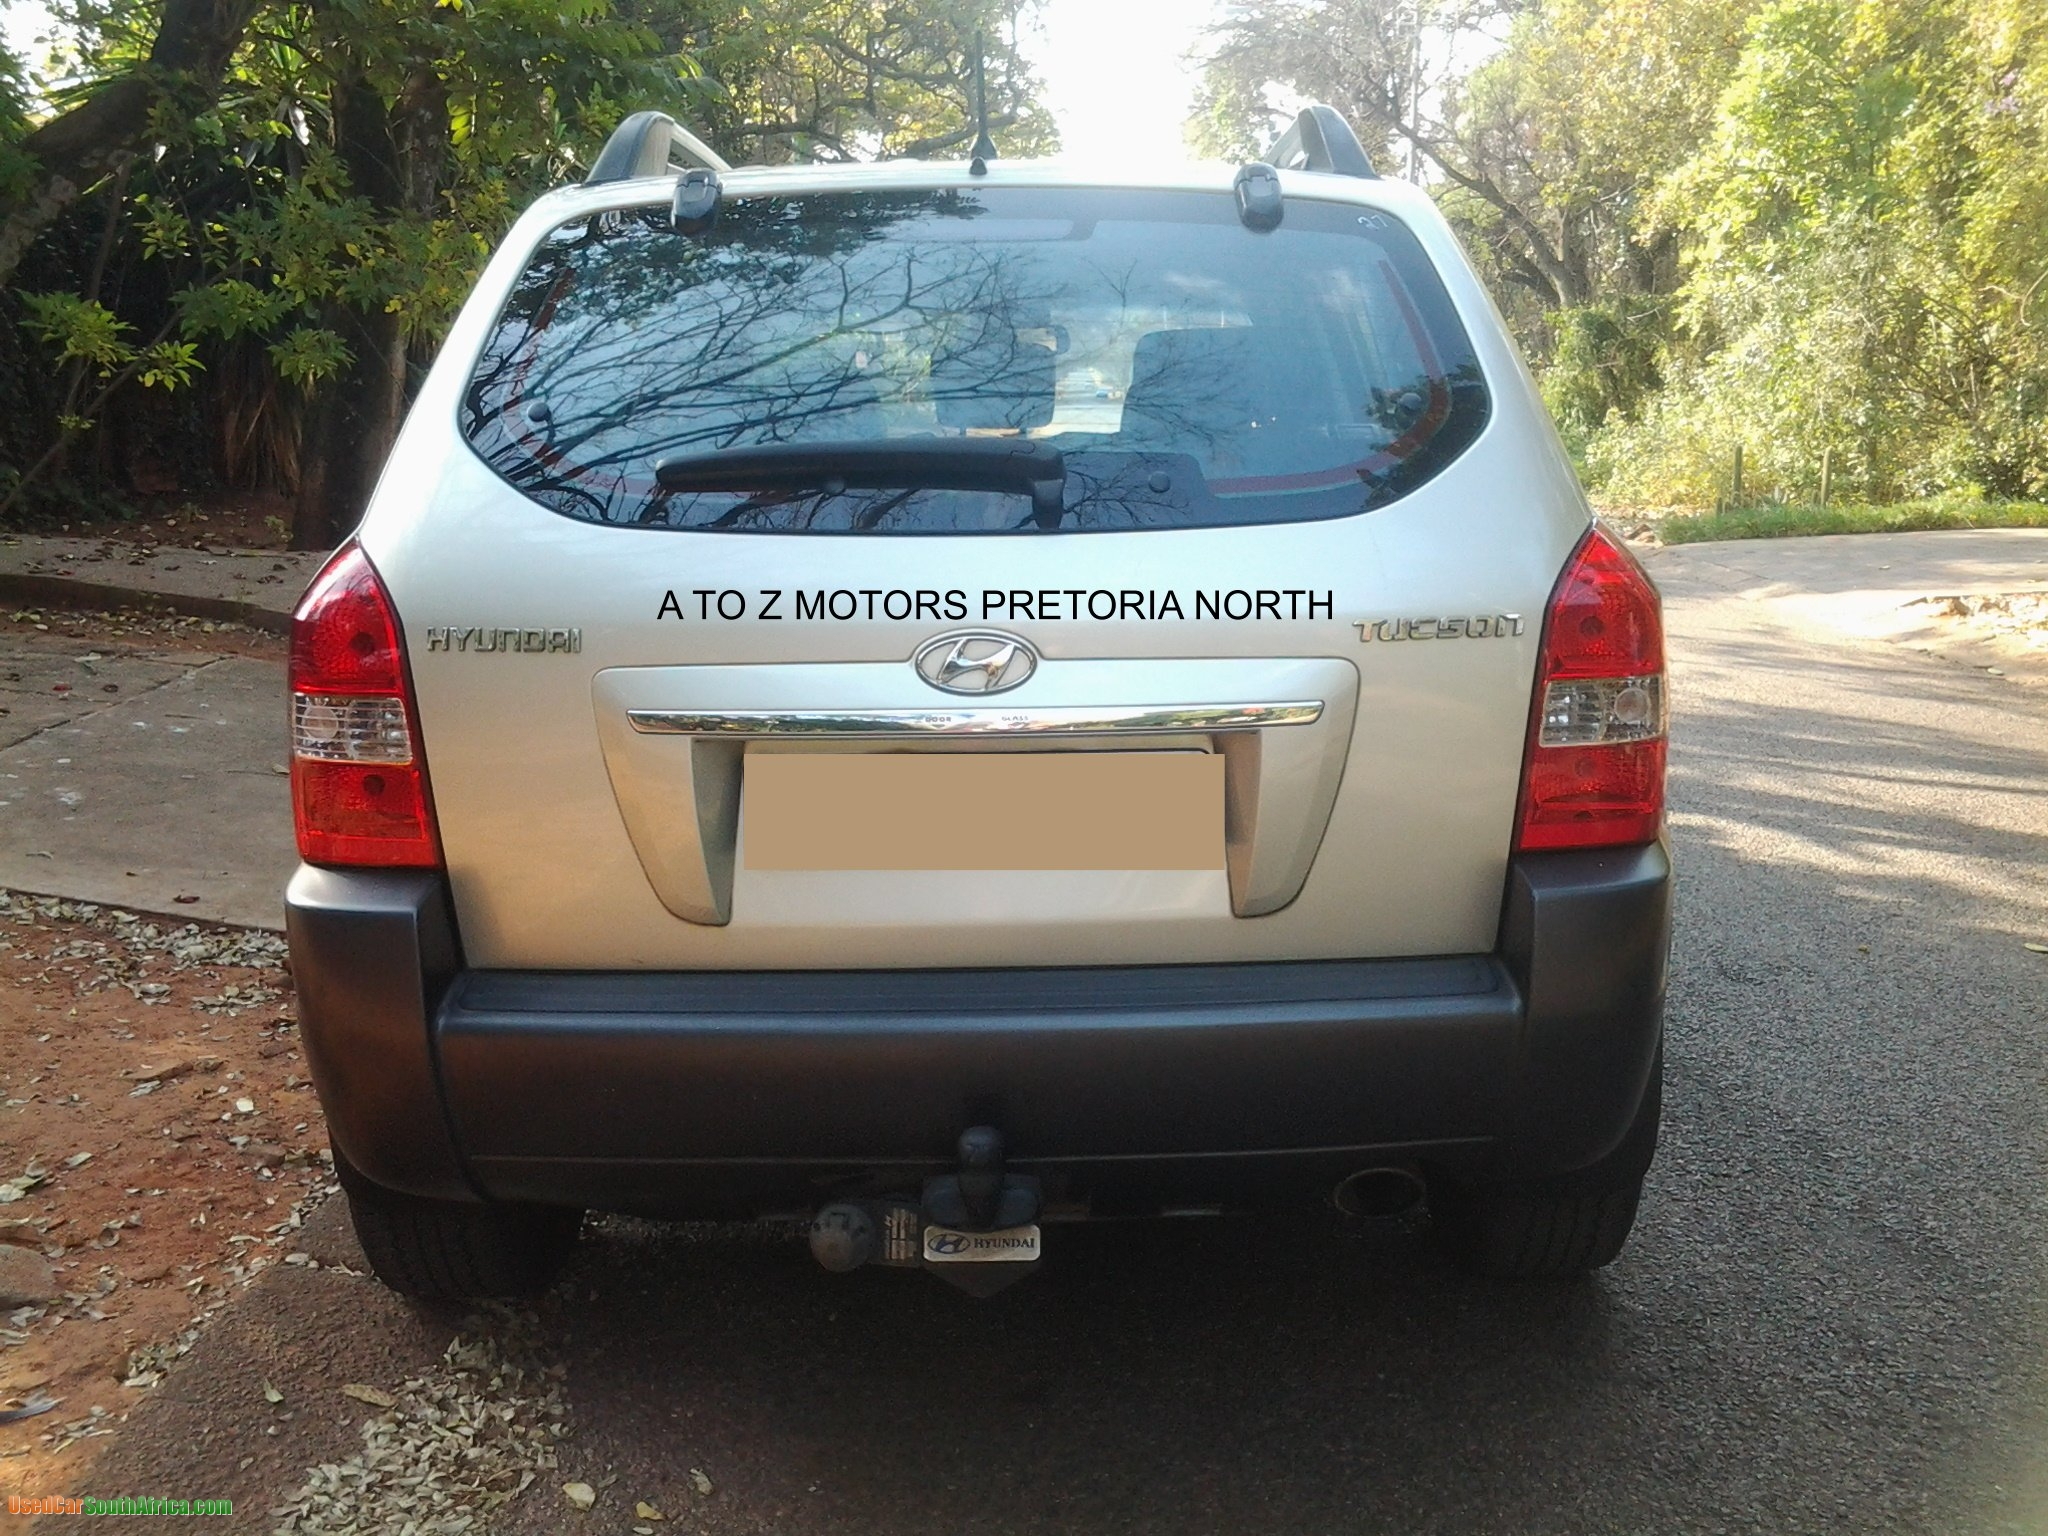 2009 hyundai tucson 2 0 gls suv used car for sale in pretoria north gauteng south africa usedcarsouthafrica 2